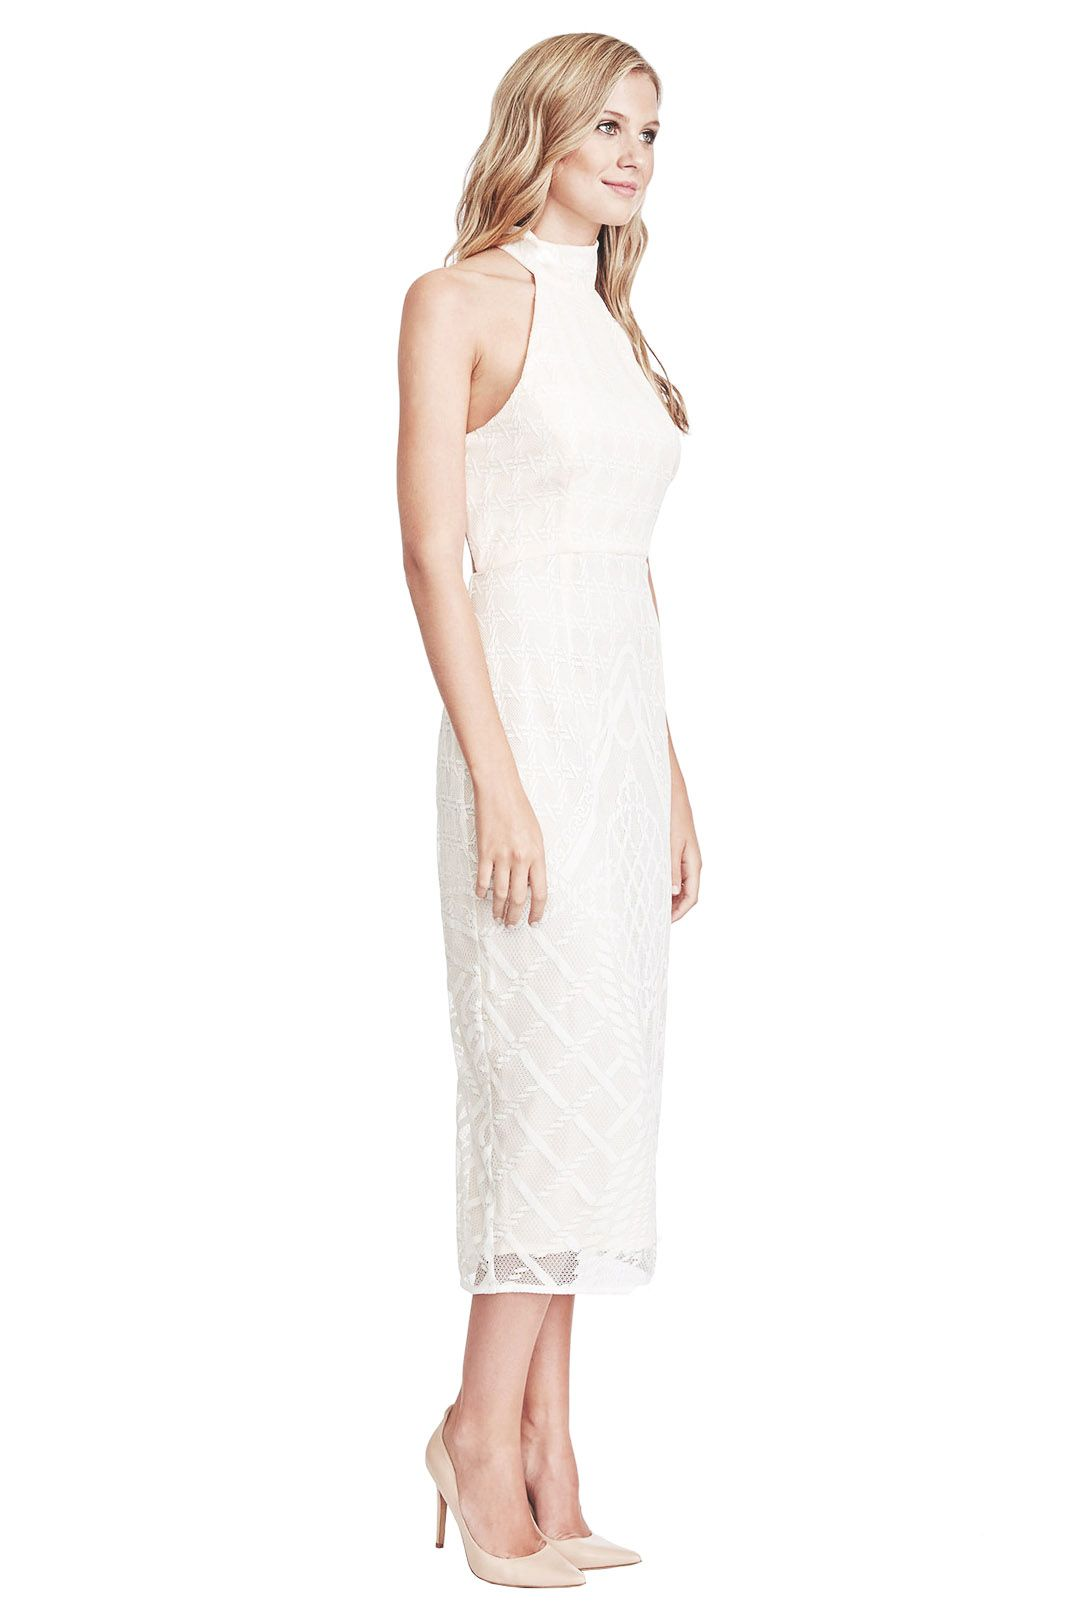 Shona Joy - Maddalena High Neck Midi Dress - Side - Ivory